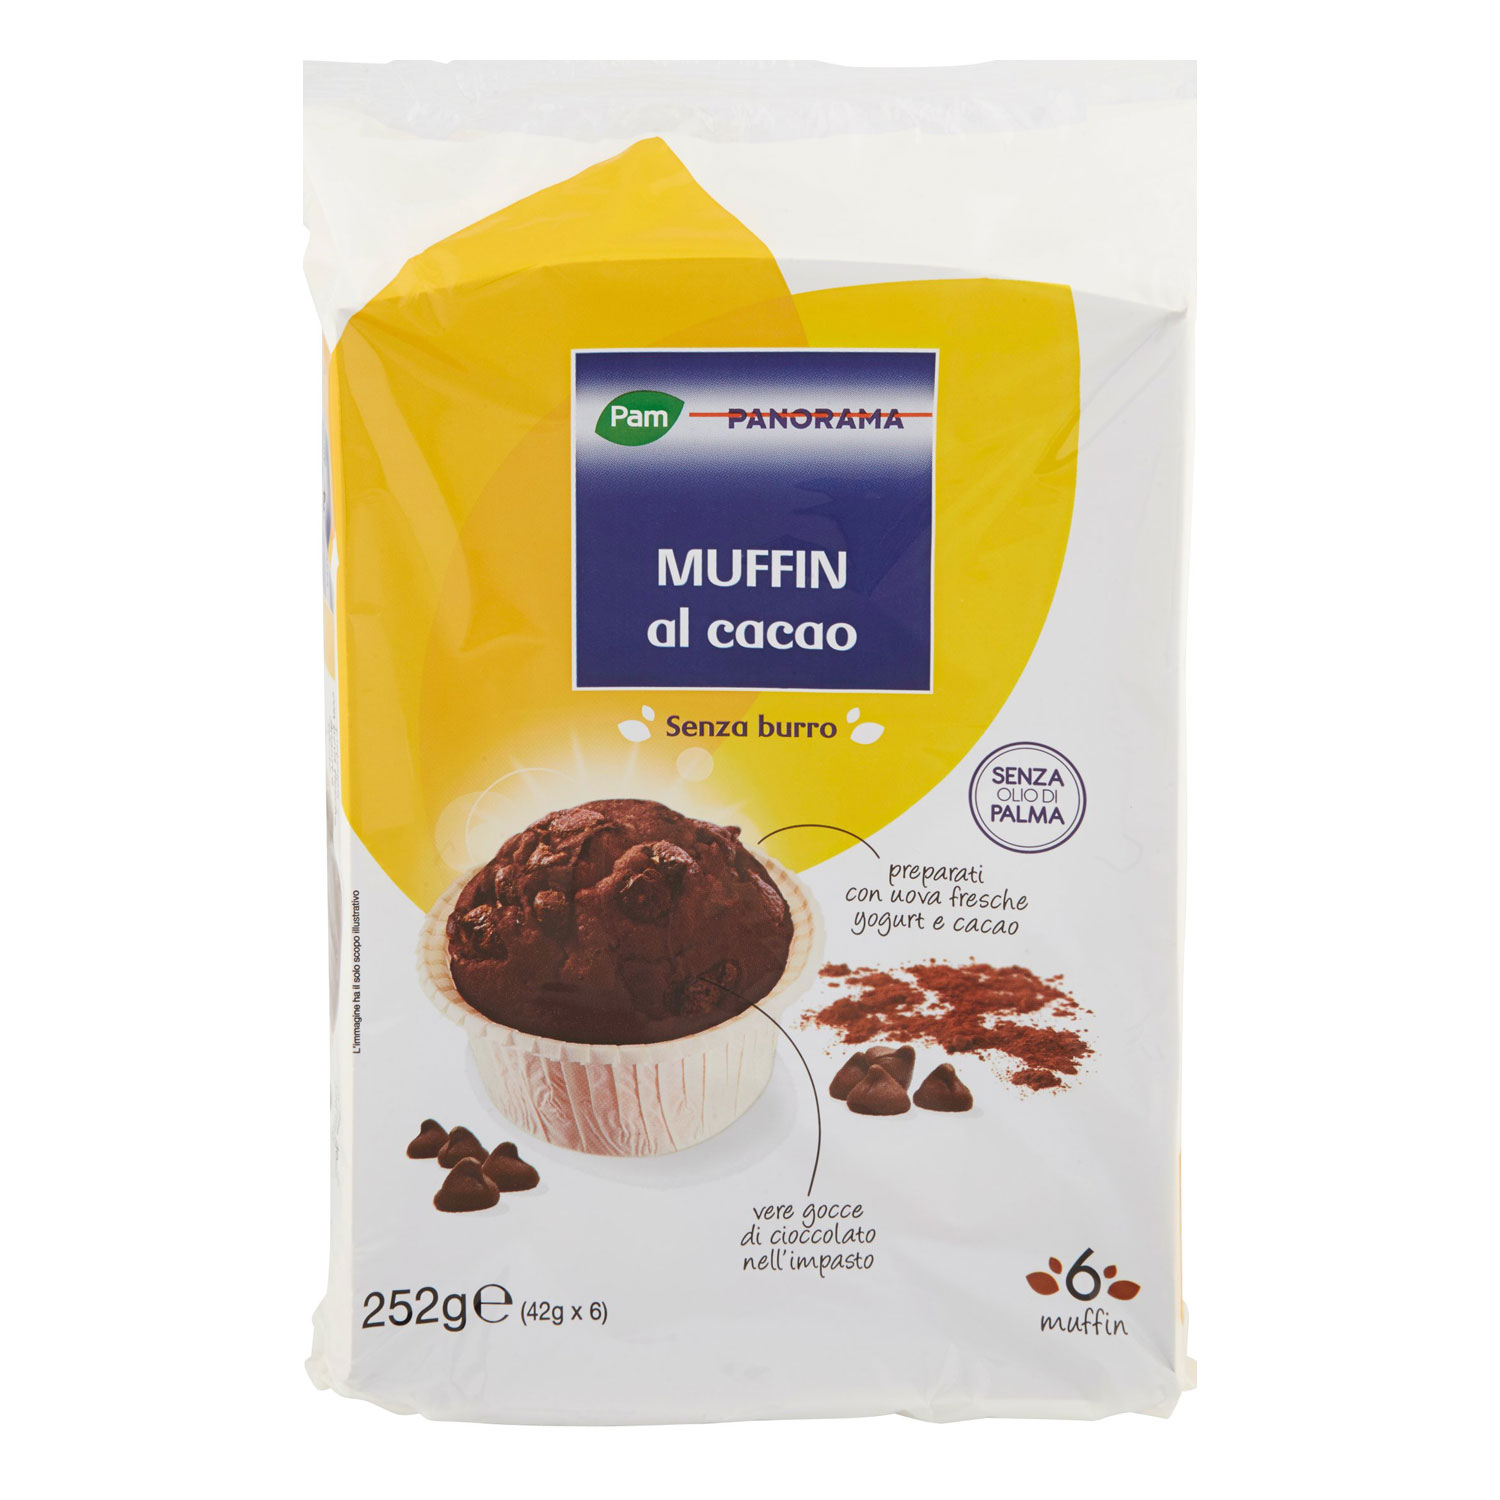 6 MUFFIN CACAO